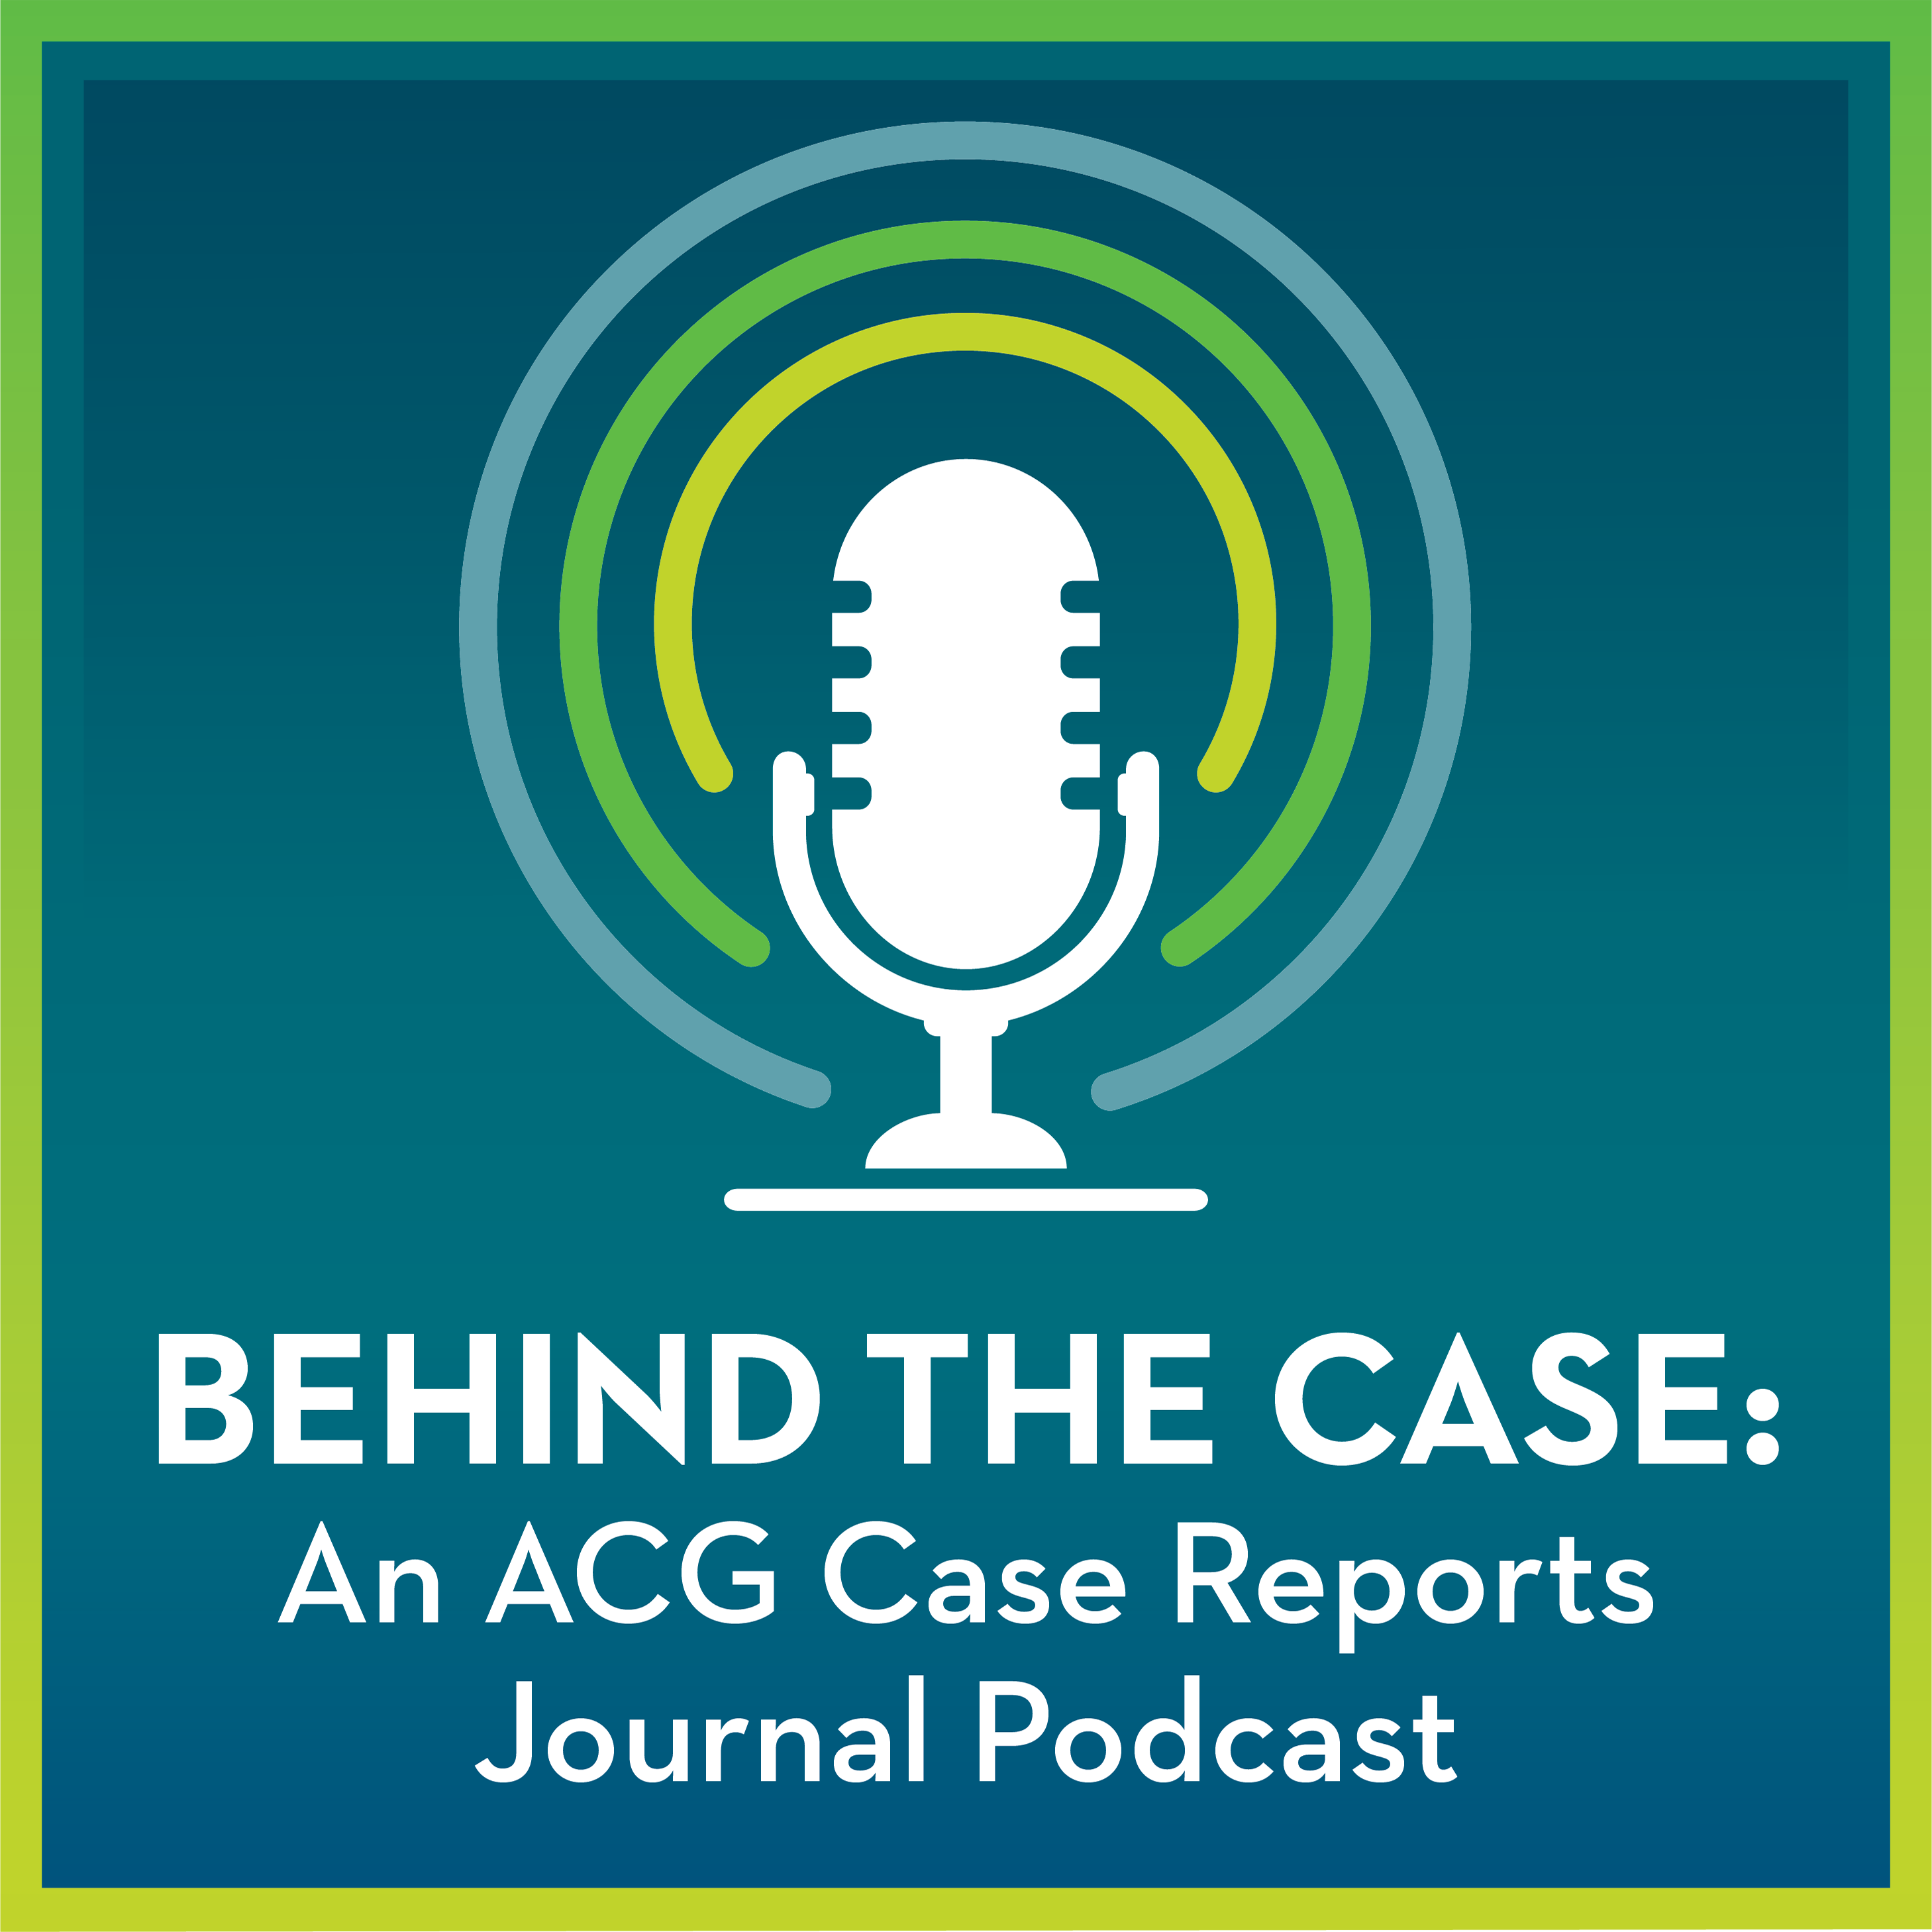 Behind the Case: An ACG Case Reports Journal Podcast